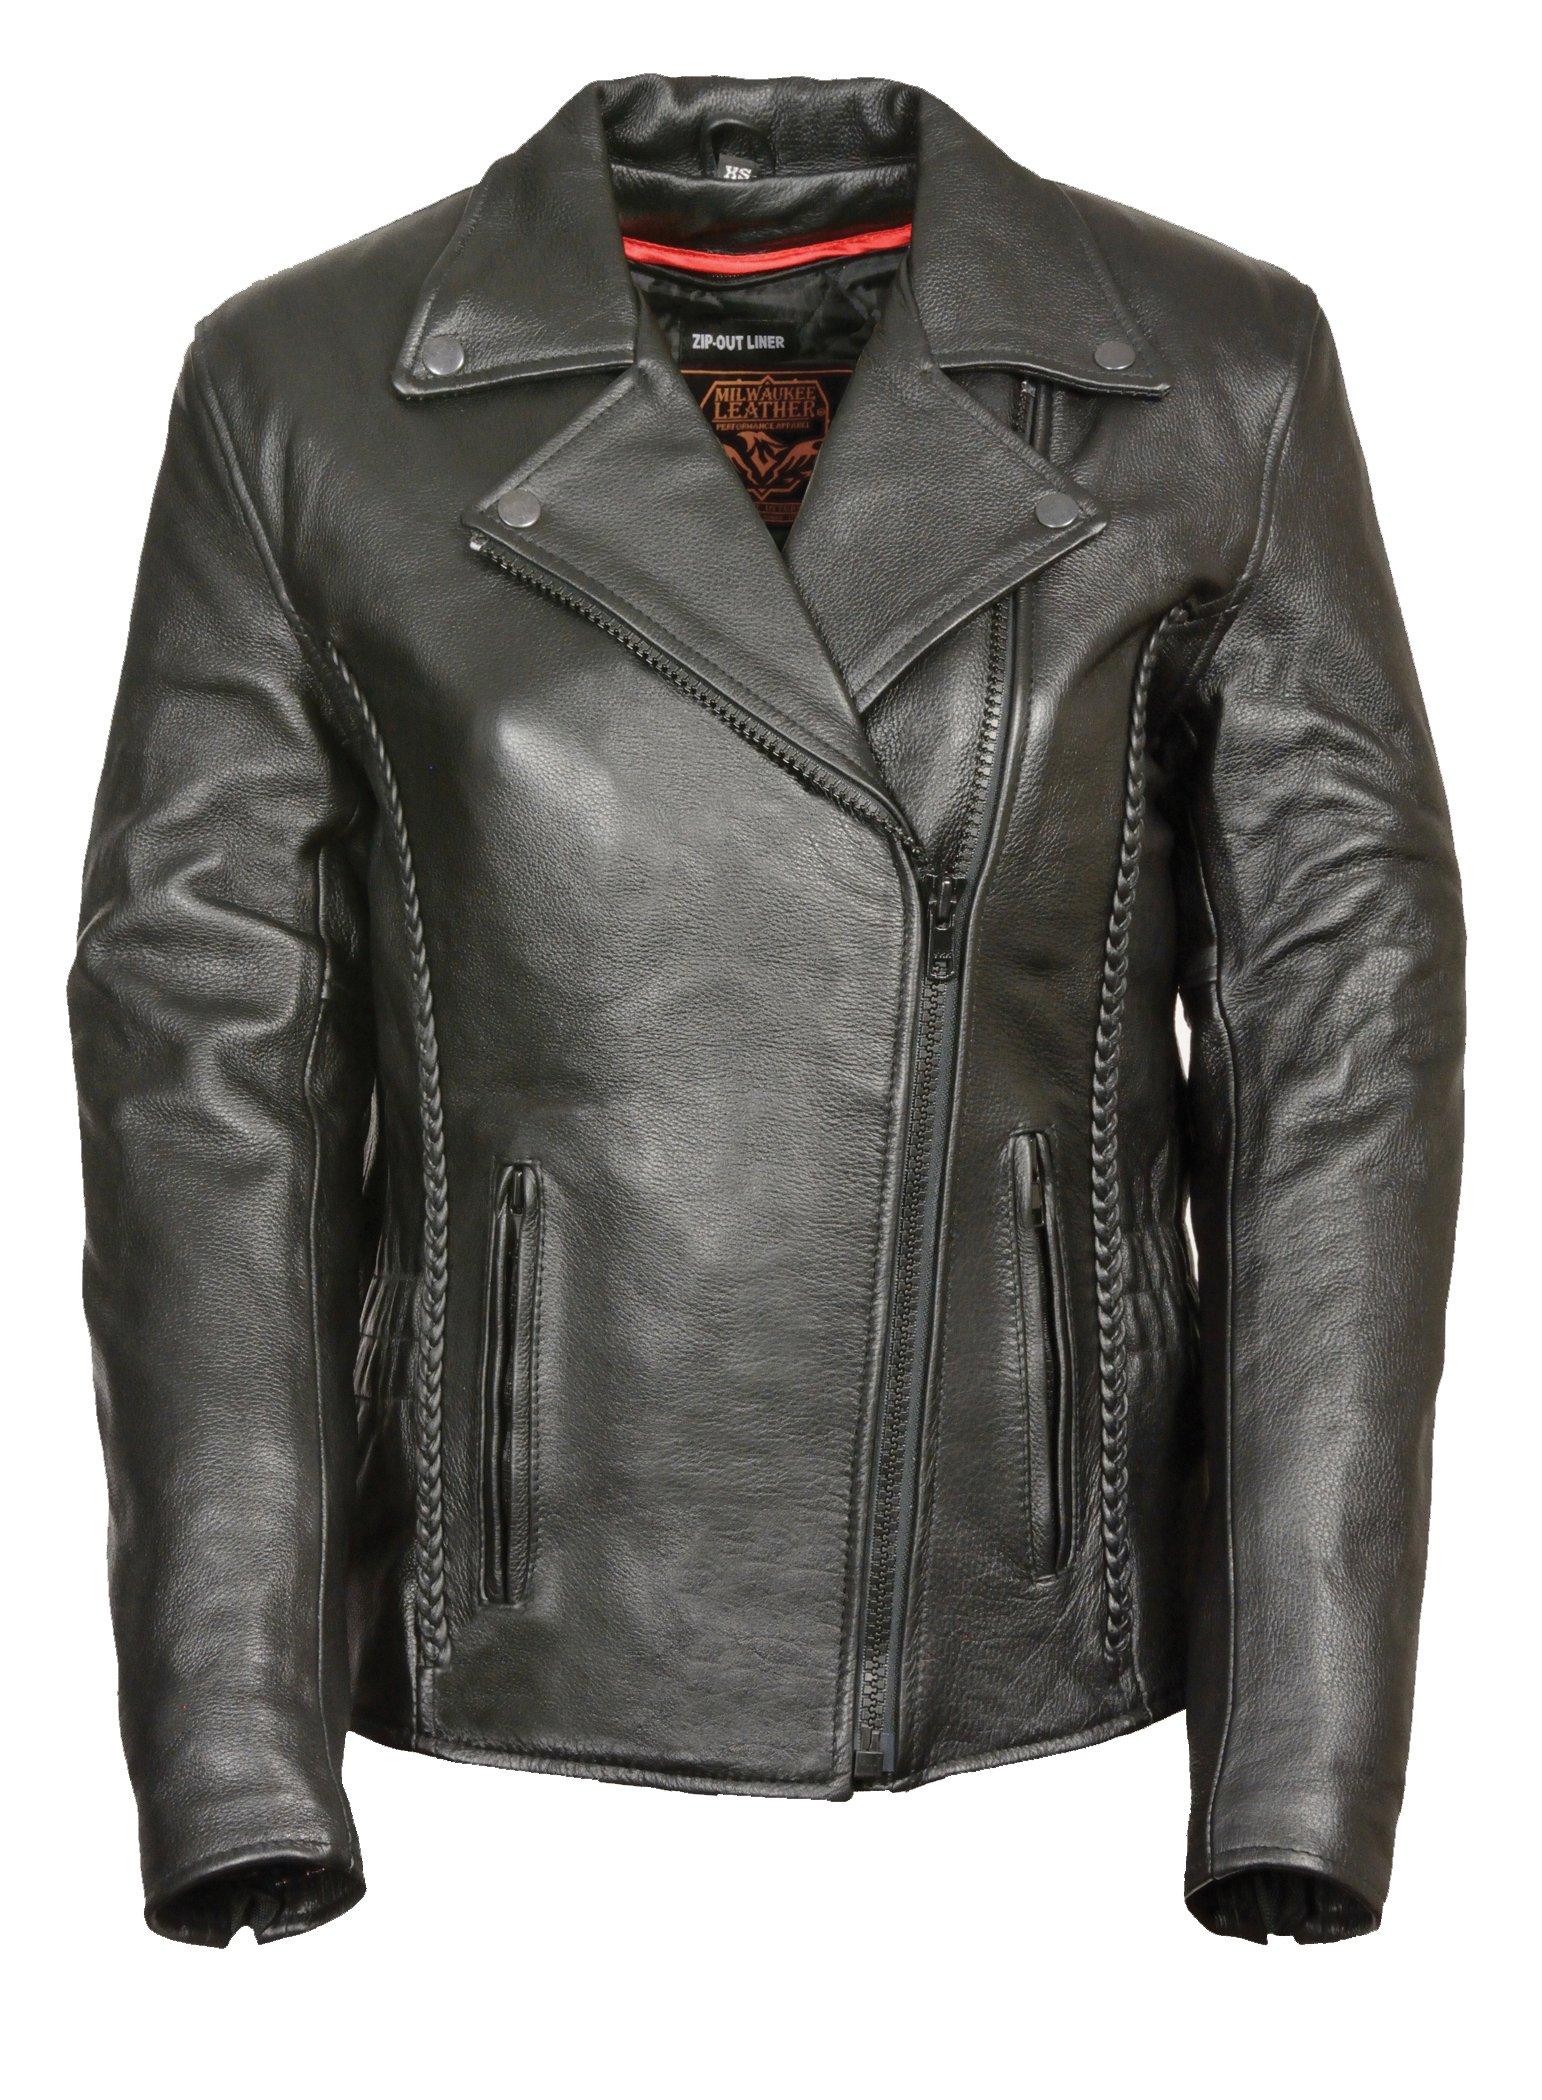 First Manufacturing Women's Blacked Out Hourglass Leather Jacket. FIL103NOCZ